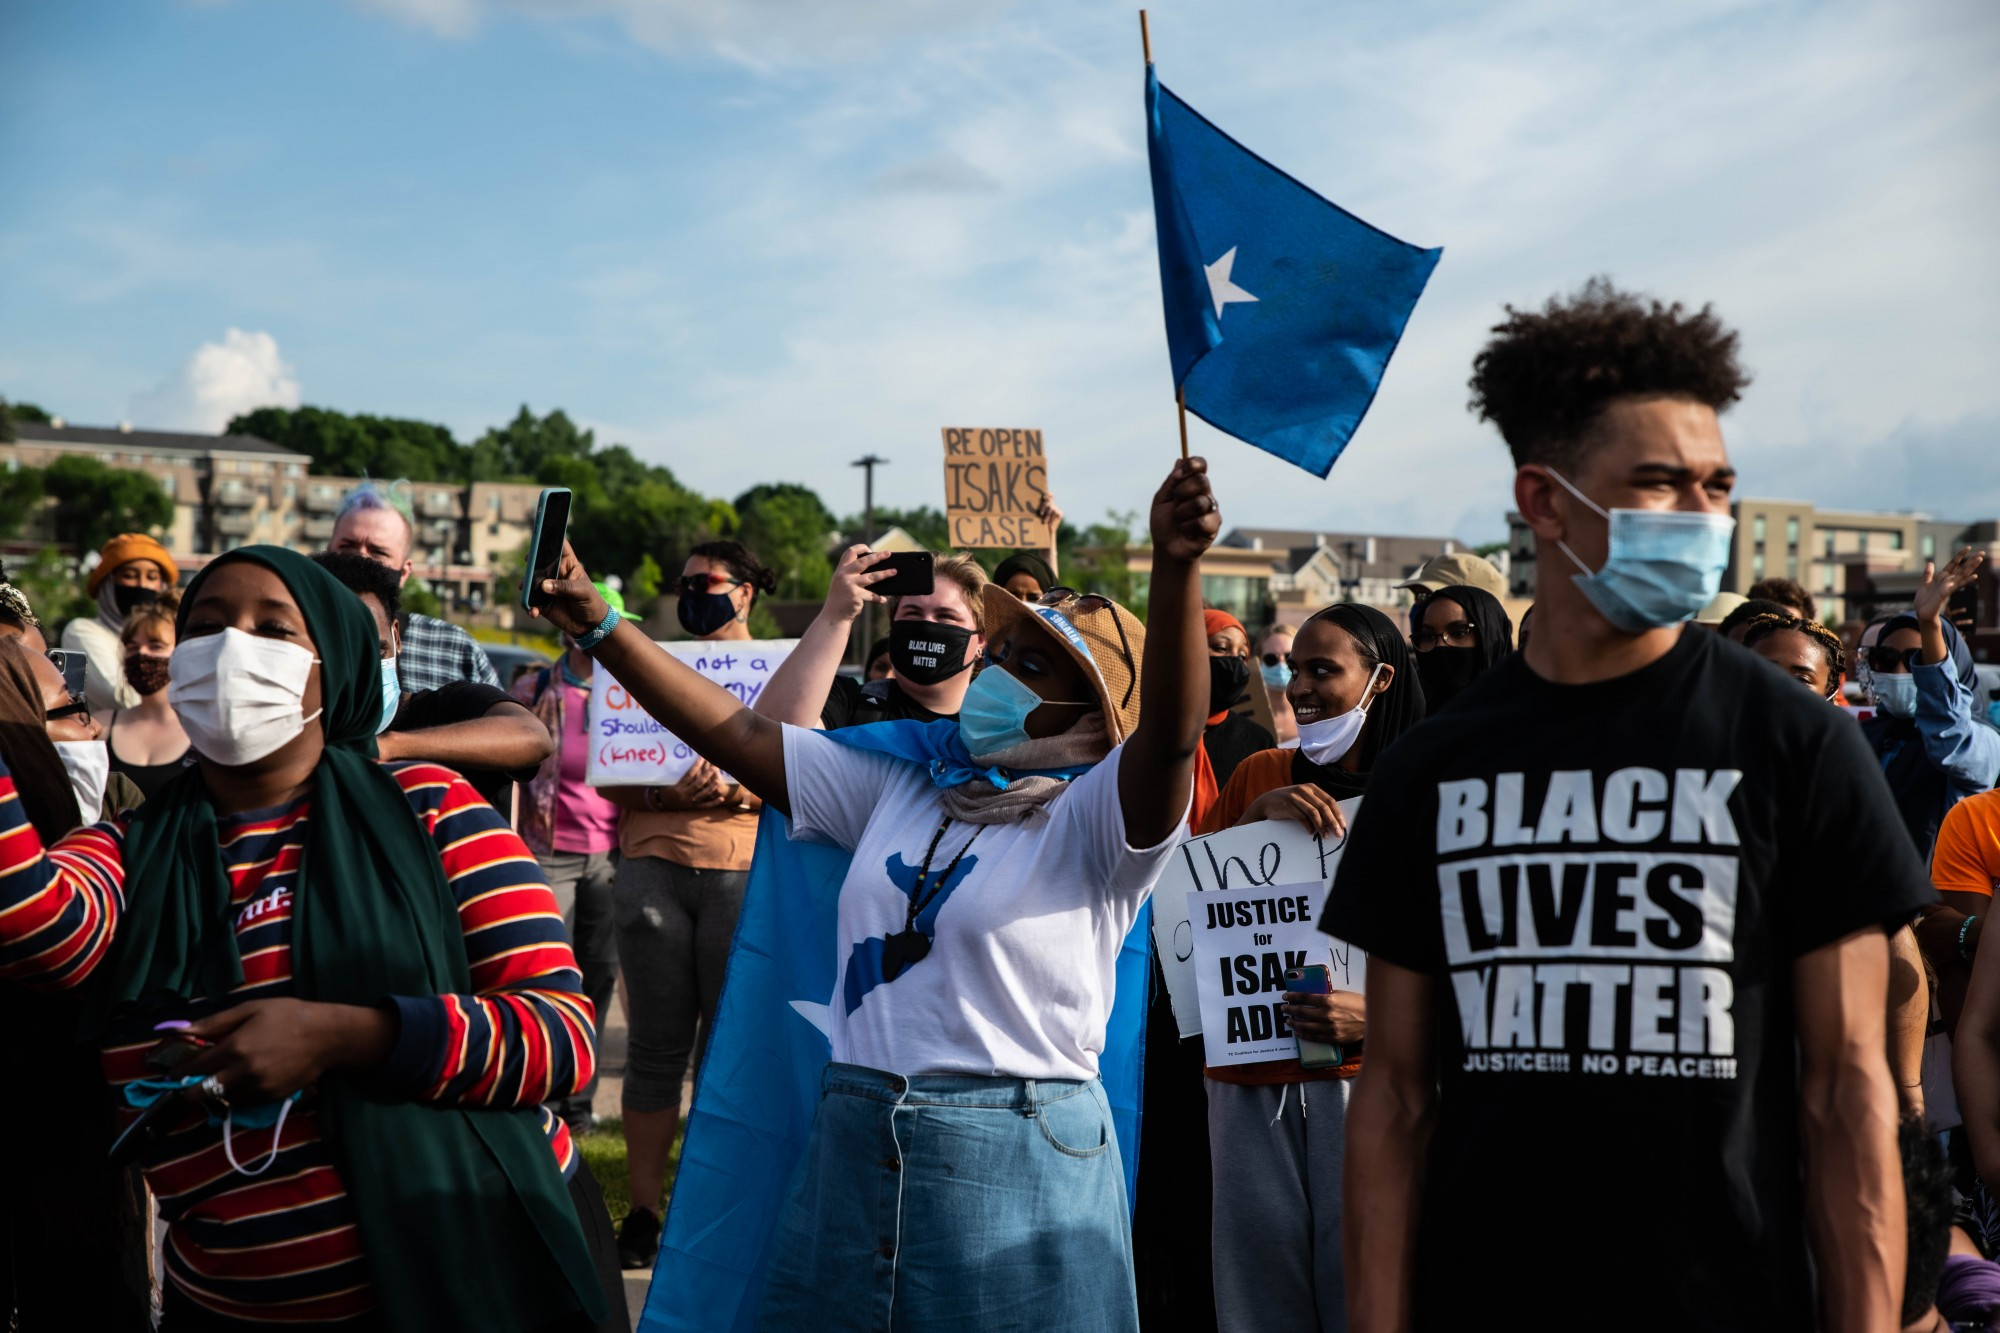 Protesters sing along with the Somali national anthem before marching along Highway 13 to the parking lot where police killed 23-year-old Isak Aden in July of 2019 in Eagan on Wednesday, July 1.